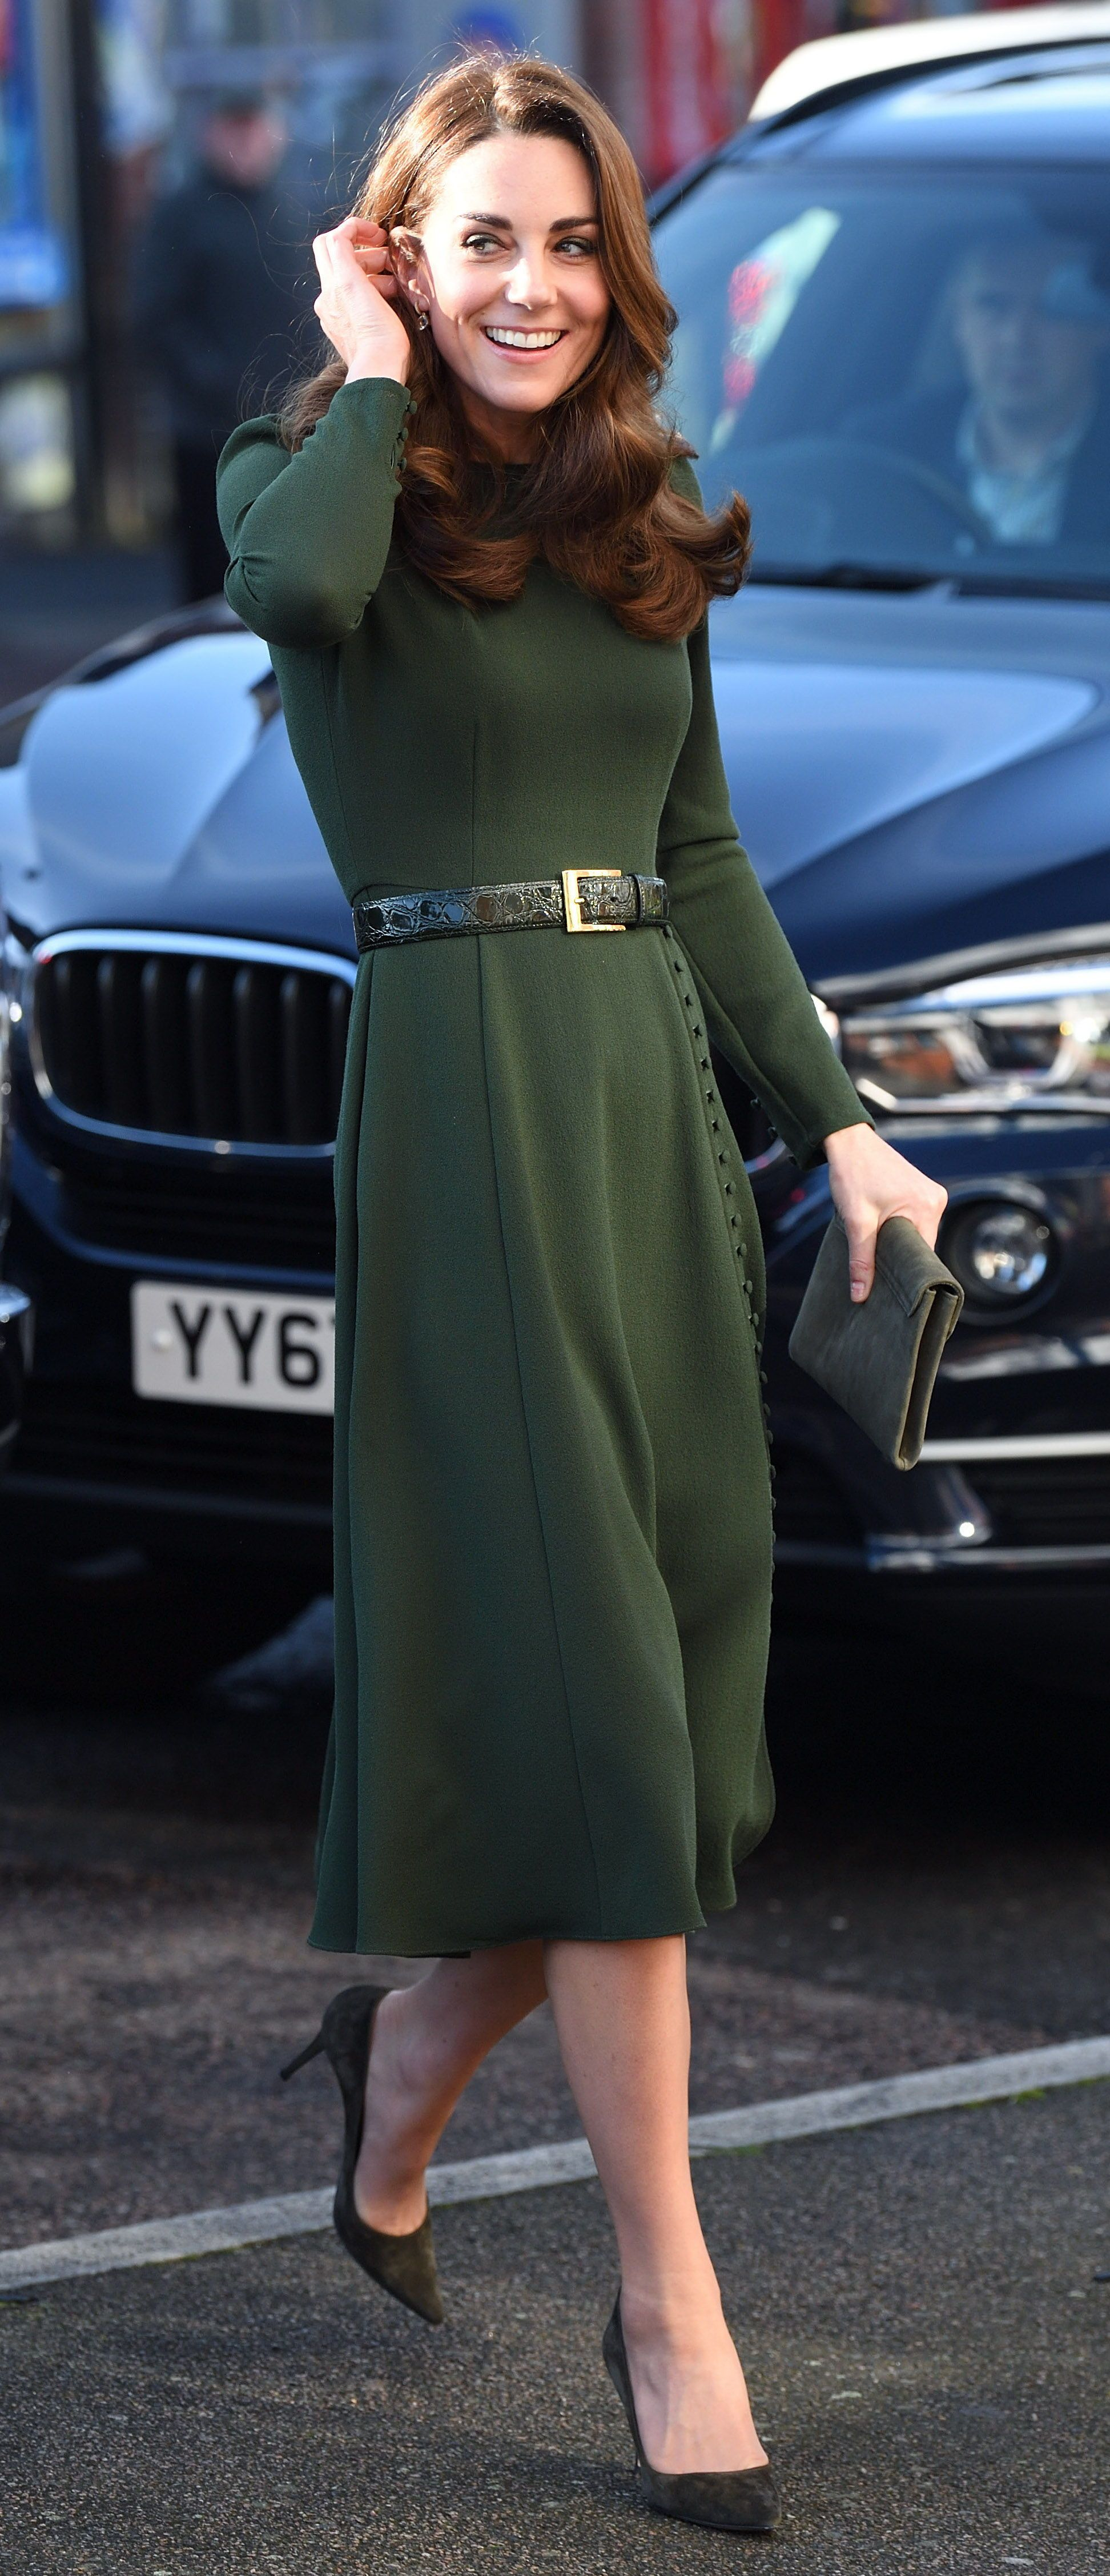 KateMiddleton hid a subtle message in her head-to-toe green look.  royals   katemiddletonfashion  britishroyals  middleton  duchess  royalfashion 2887a5143